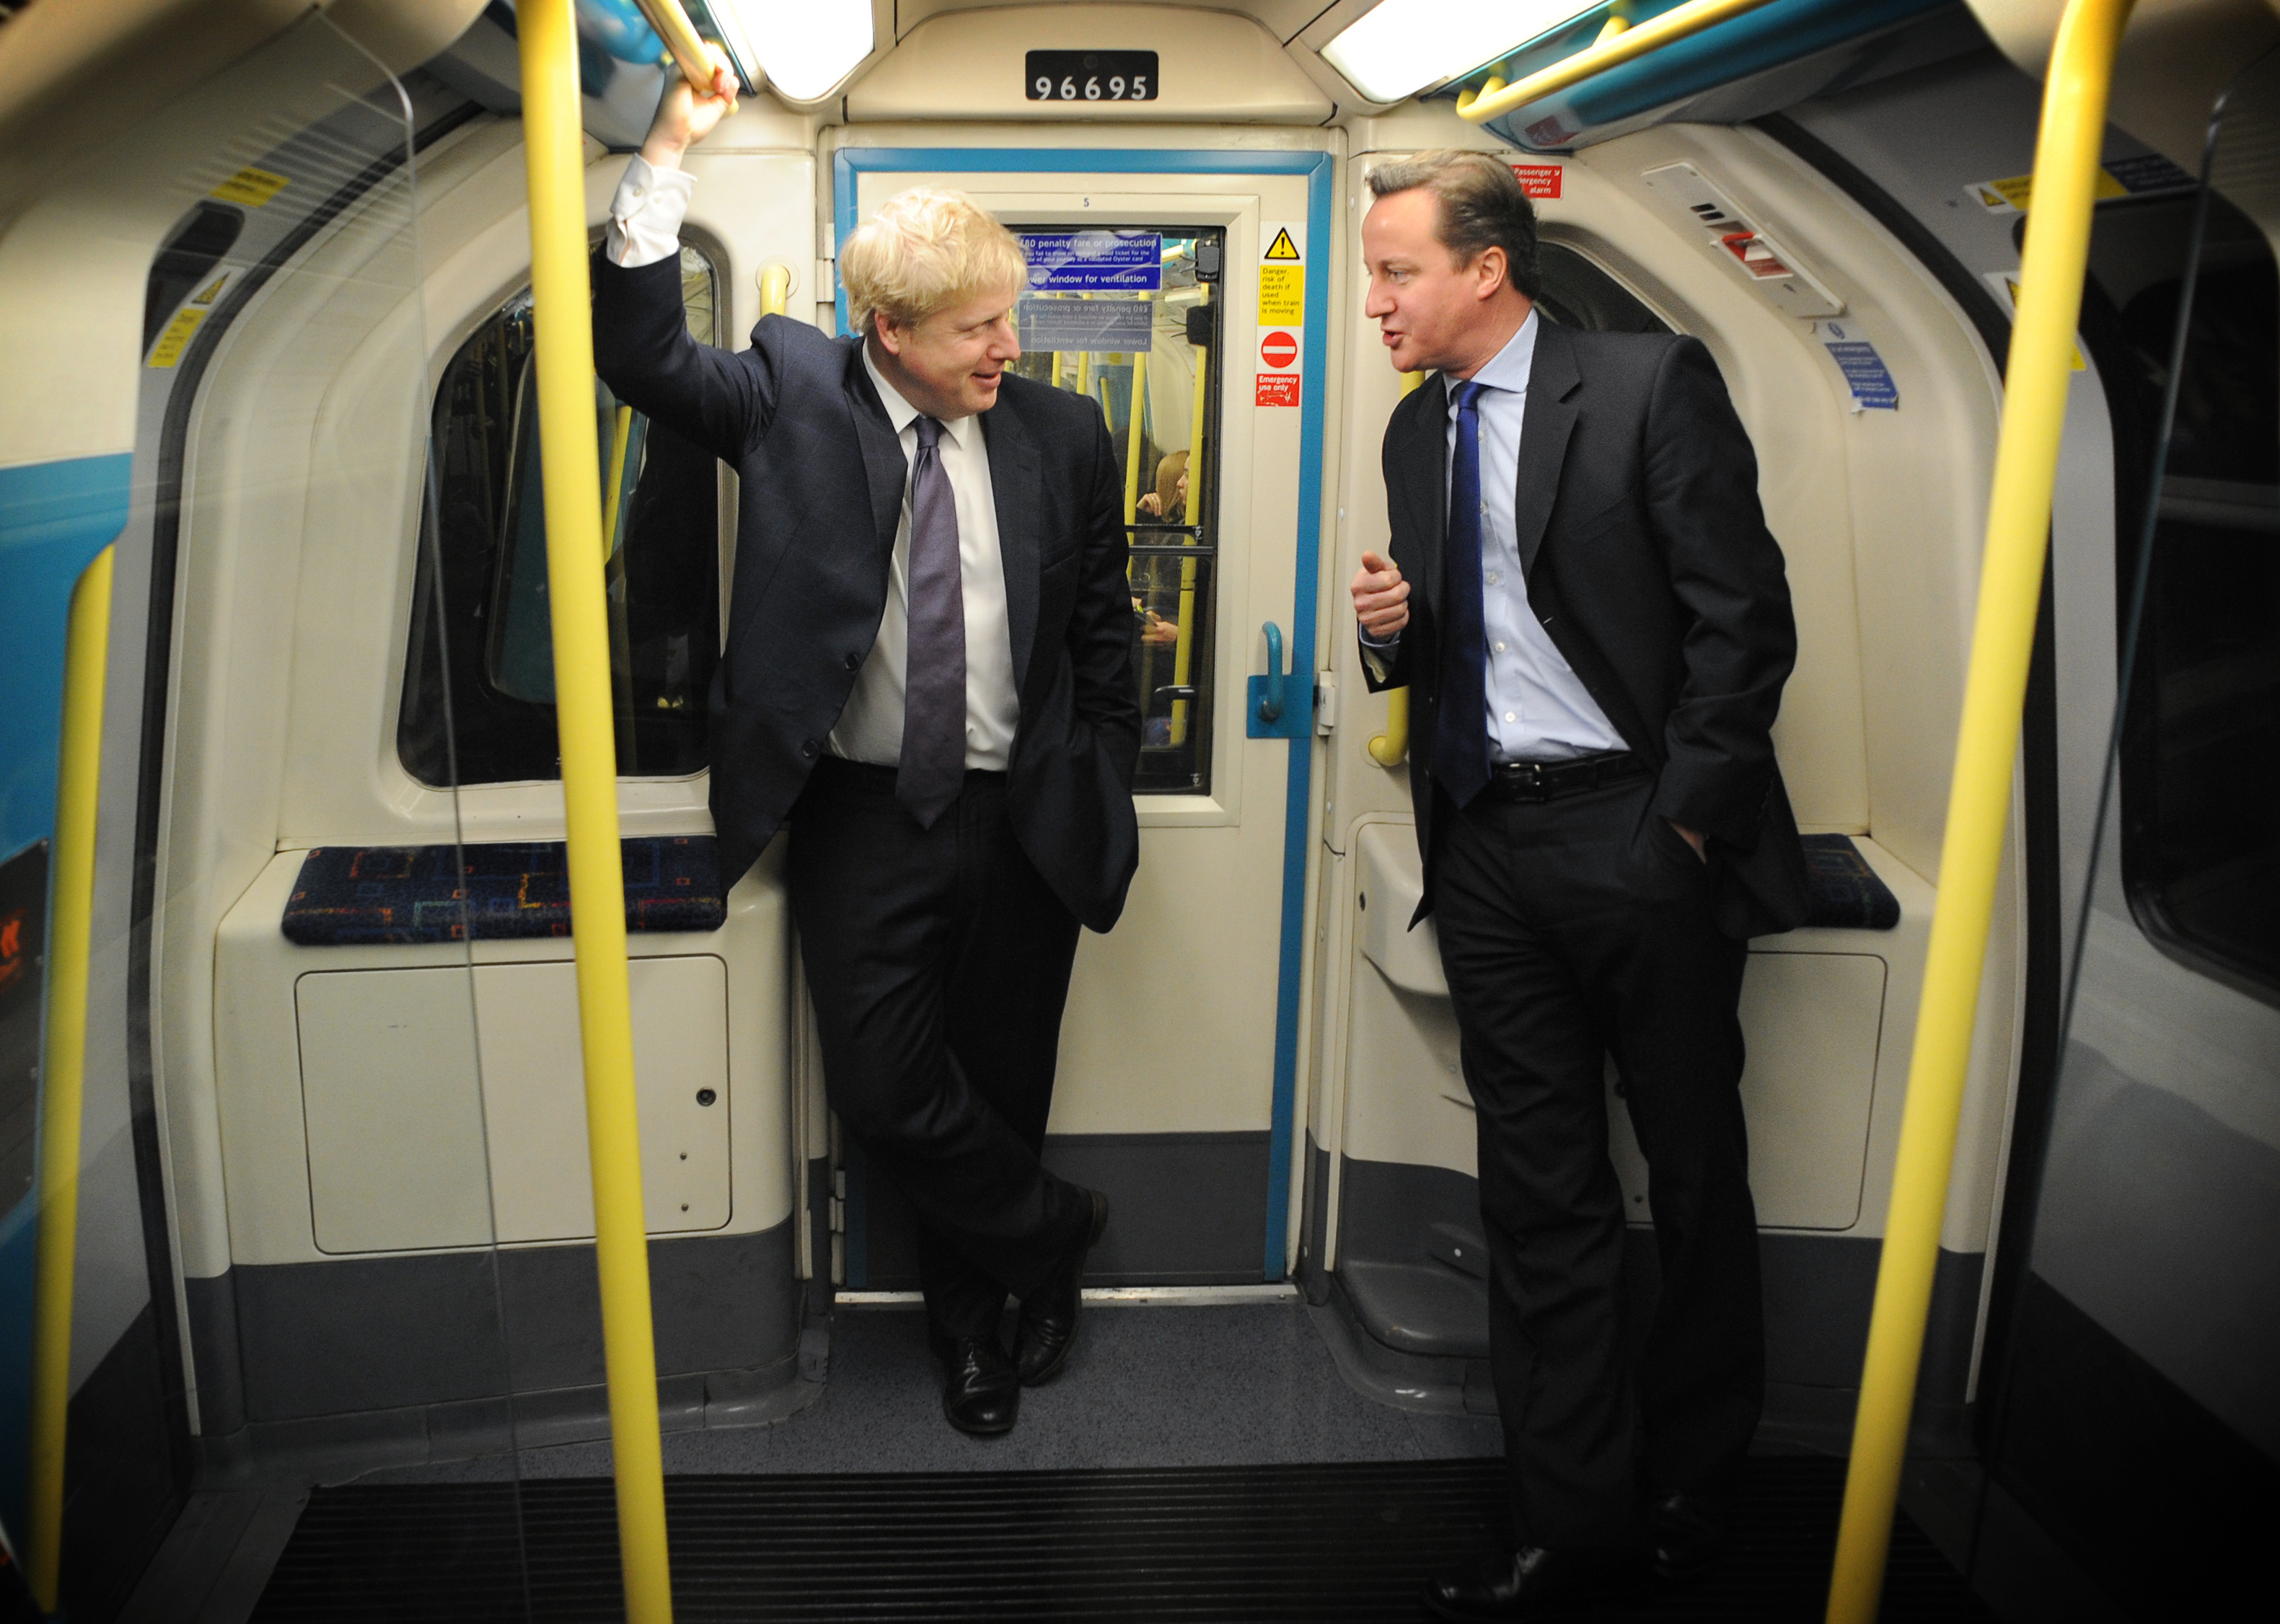 Prime Minister David Cameron and London Mayor Boris Johnson (left) take the tube from Westminster to Southwark where they visited Transport for London's Surface Transport and Traffic Operations Centre which monitors traffic flow and will play a key part in the summer during the London Olympics. PRESS ASSOCIATION Photo. Picture date: Saturday March 3, 2012. See PA story POLITICS Conservatives. Photo credit should read: Stefan Rousseau/PA Wire